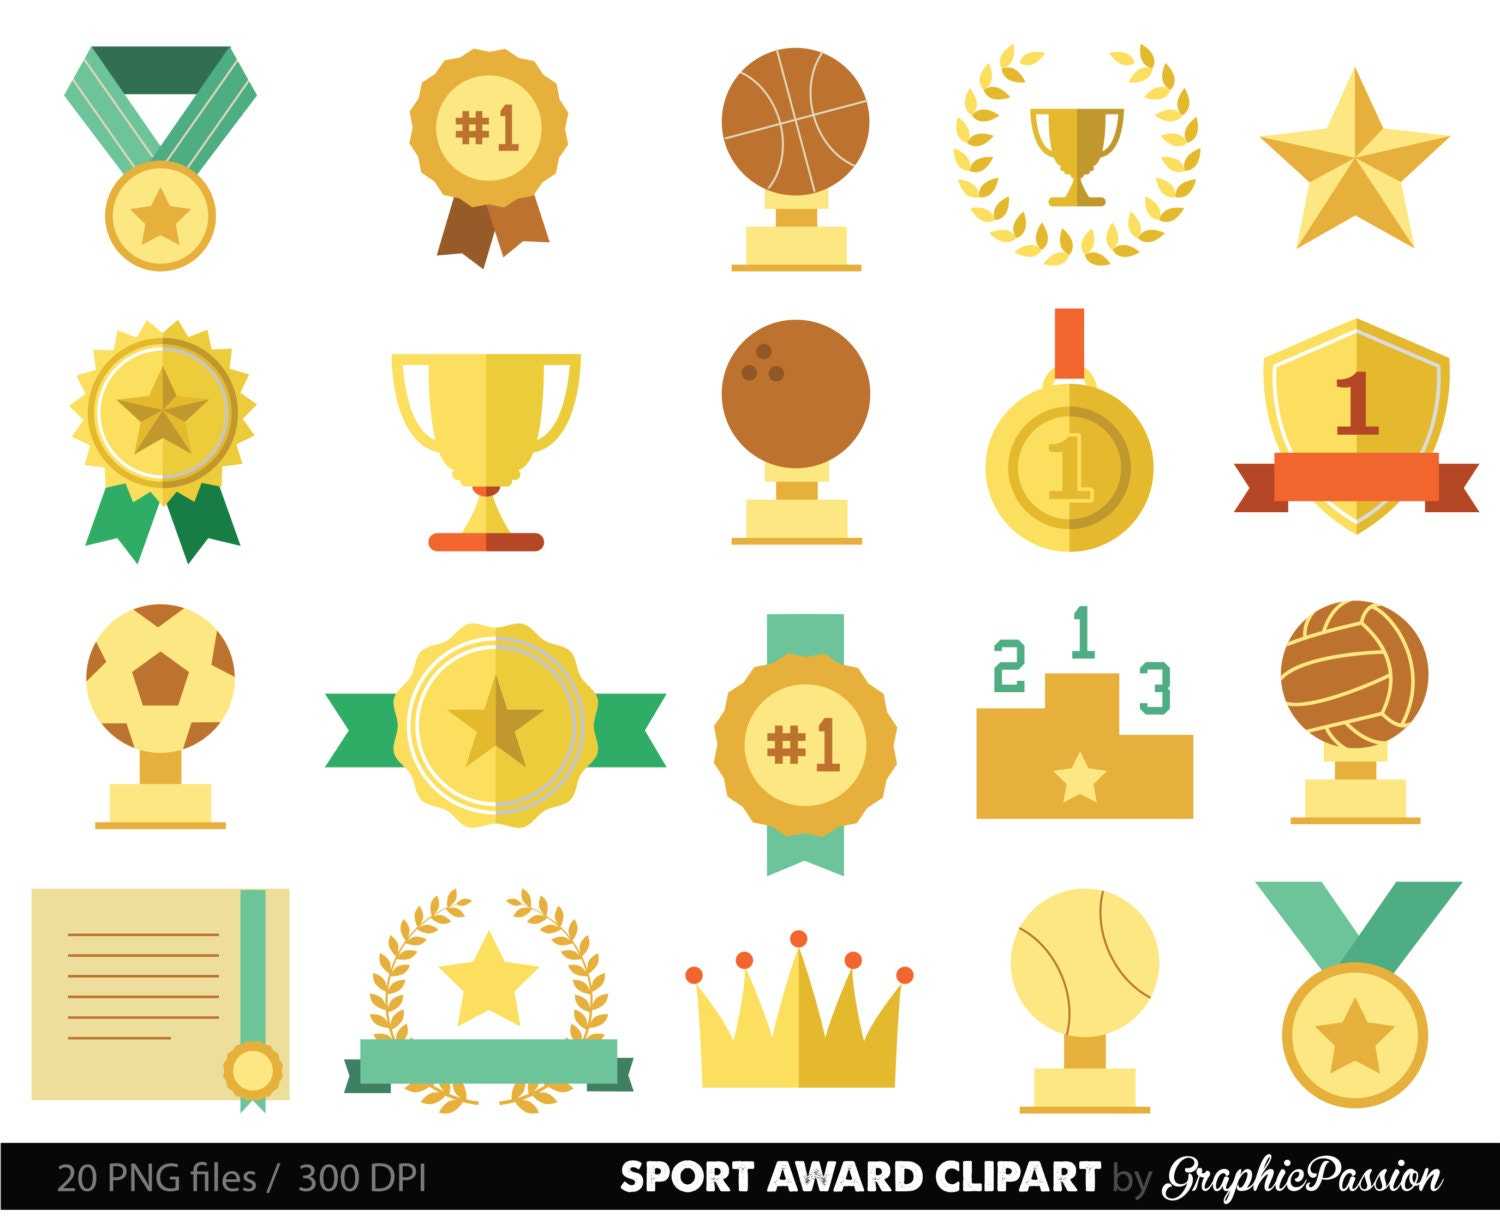 sports clipart racing prizes flags digital paper stars medals | Etsy